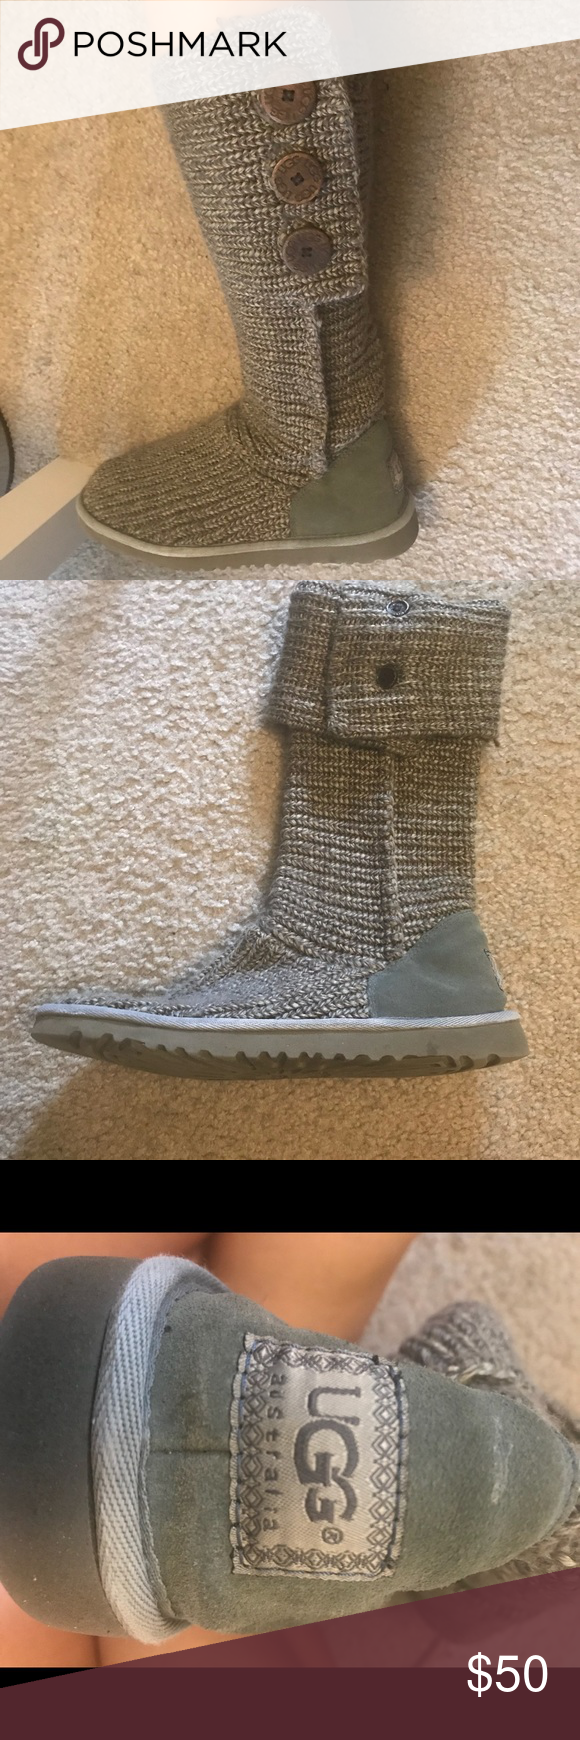 Uggs Women Sweater Boots Size 9 Grey Womens Sweater Uggs Fold Down